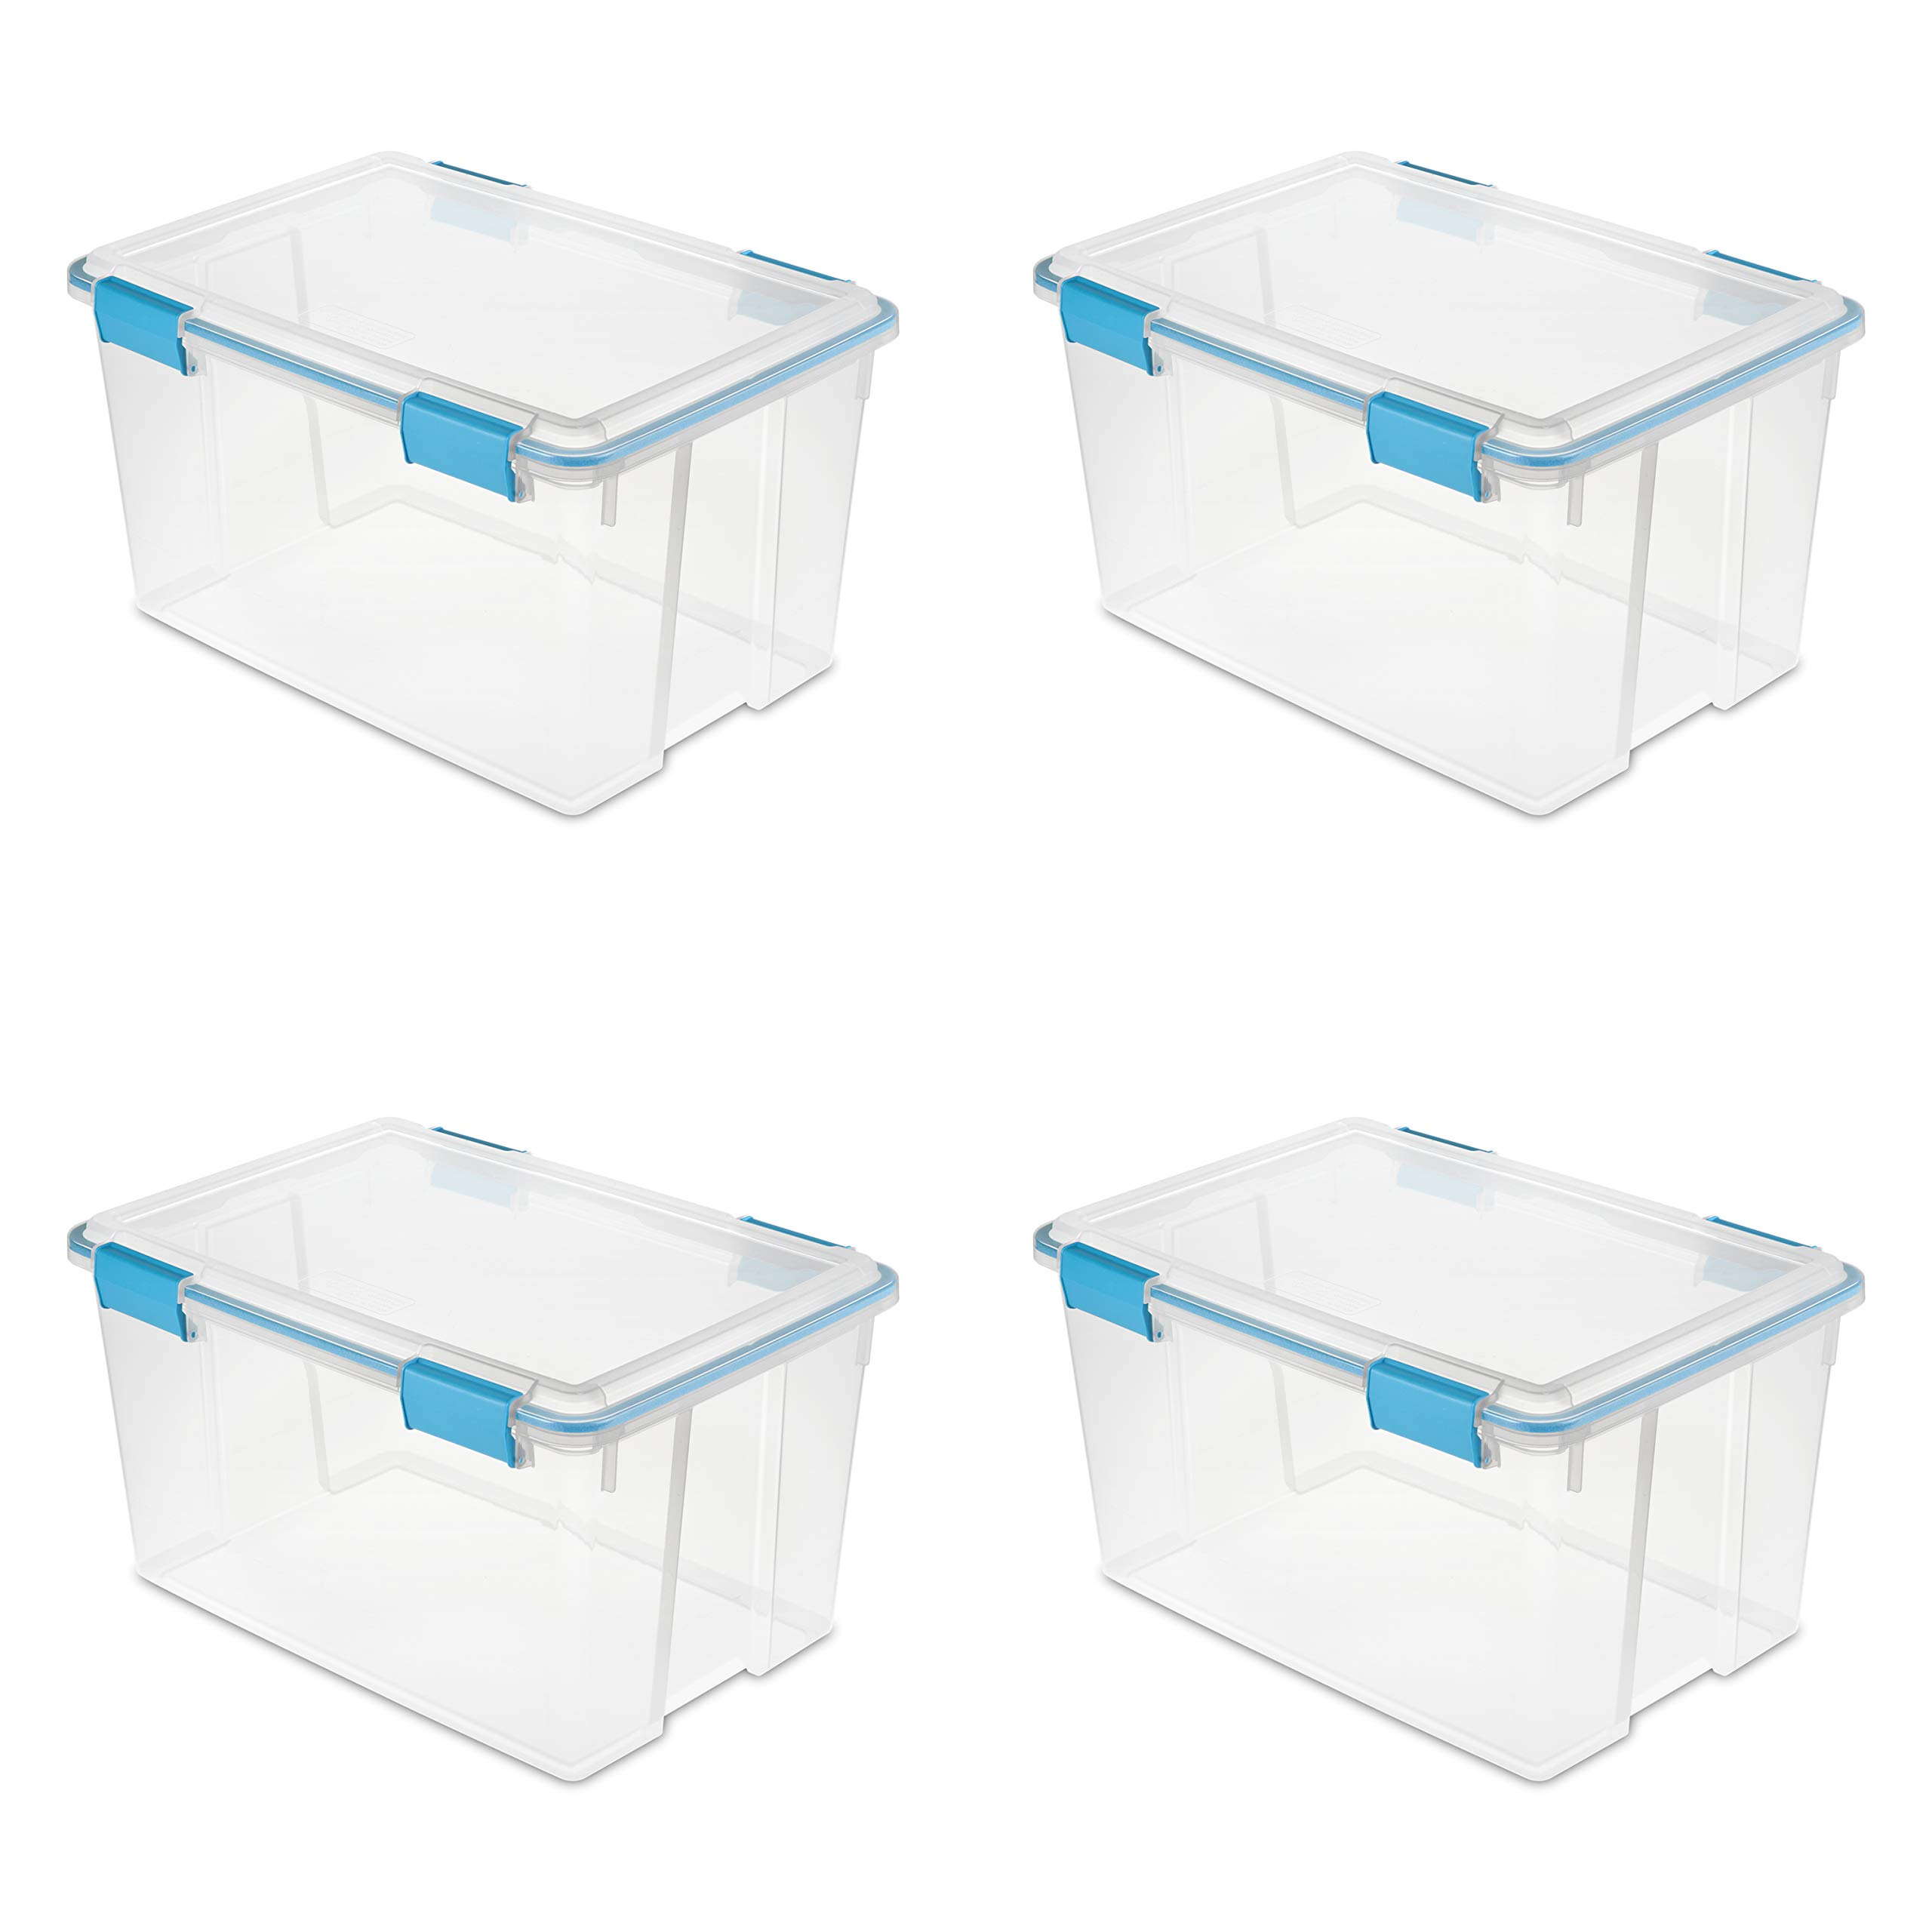 Sterilite 19344304 54 Quart/51 Liter Gasket Box, Clear with Blue Aquarium Latches and Gasket, 4-Pack by STERILITE